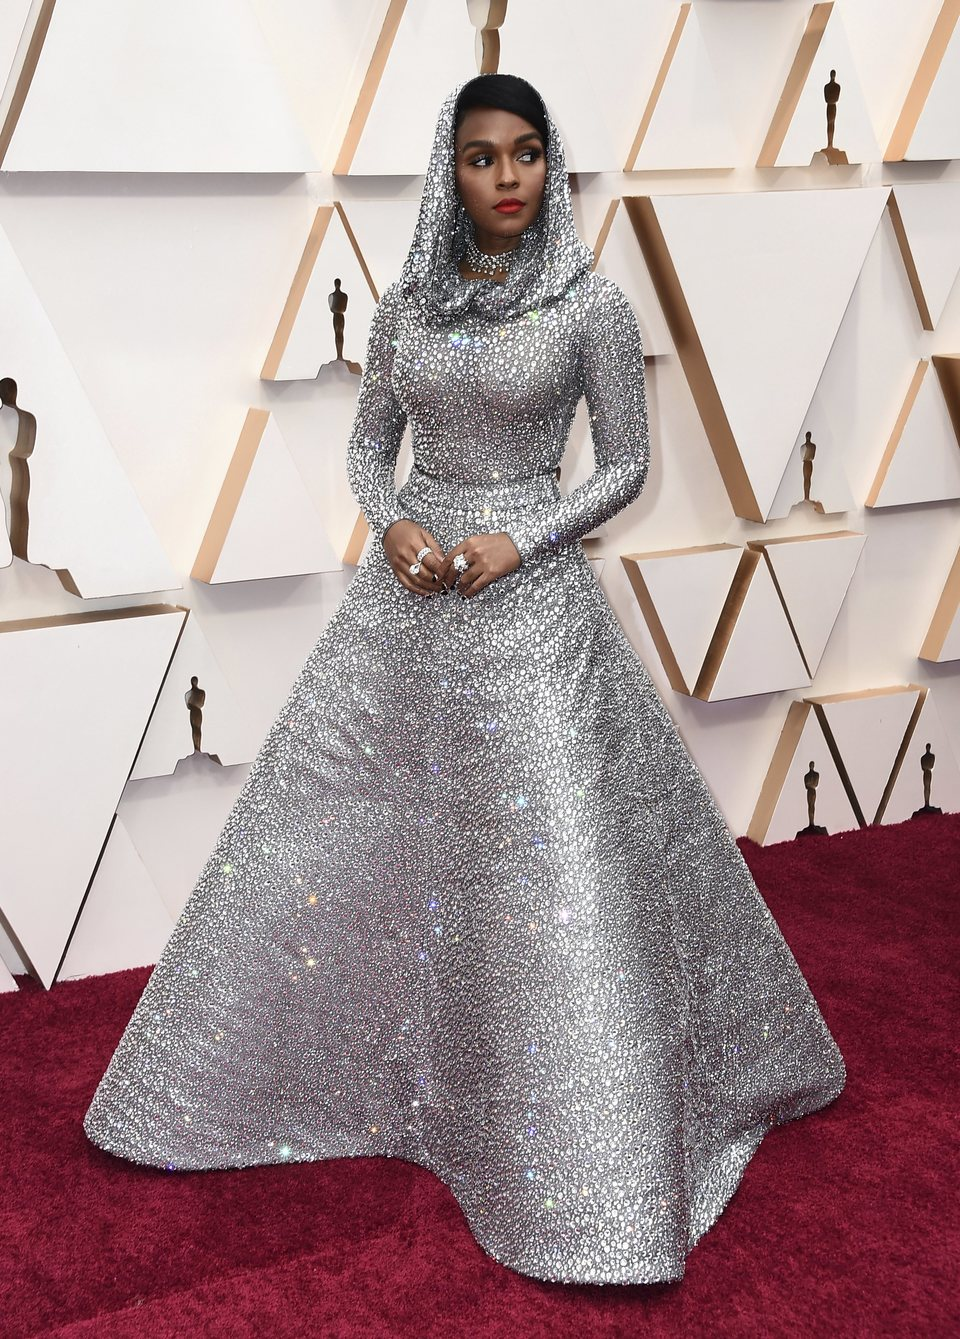 Janelle Monae at the red carpet of the Oscars 2020